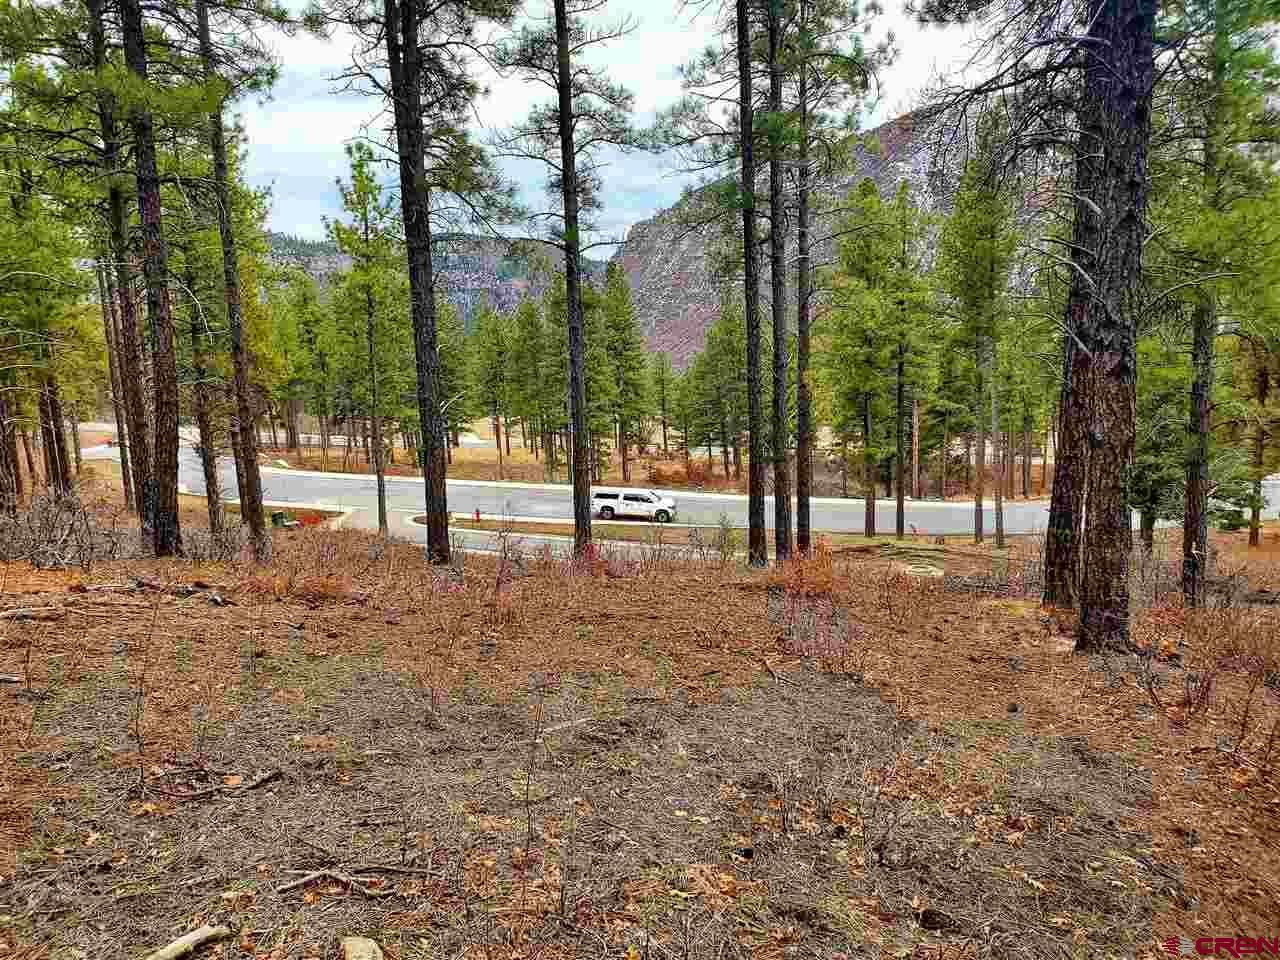 Photo of (Lot 88-1) 20 Sego Lily Court, Durango, CO 81301 (MLS # 767542)